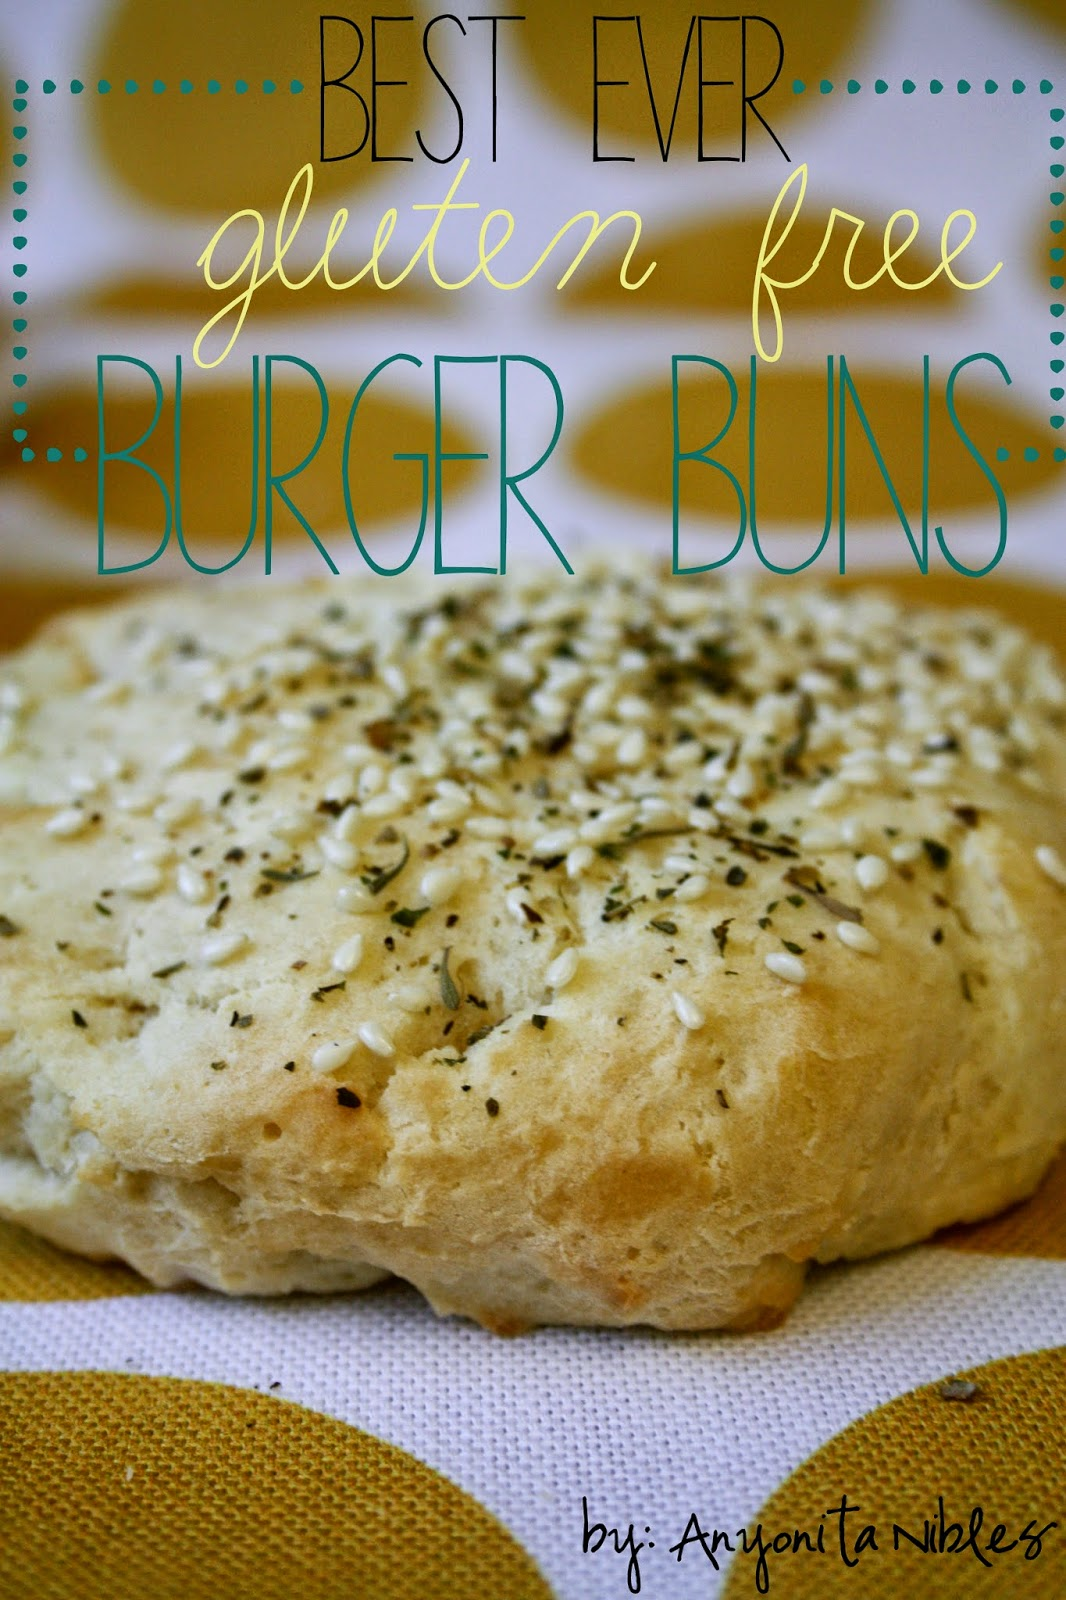 The only recipe you'll need for gluten free burger buns. Amazing!